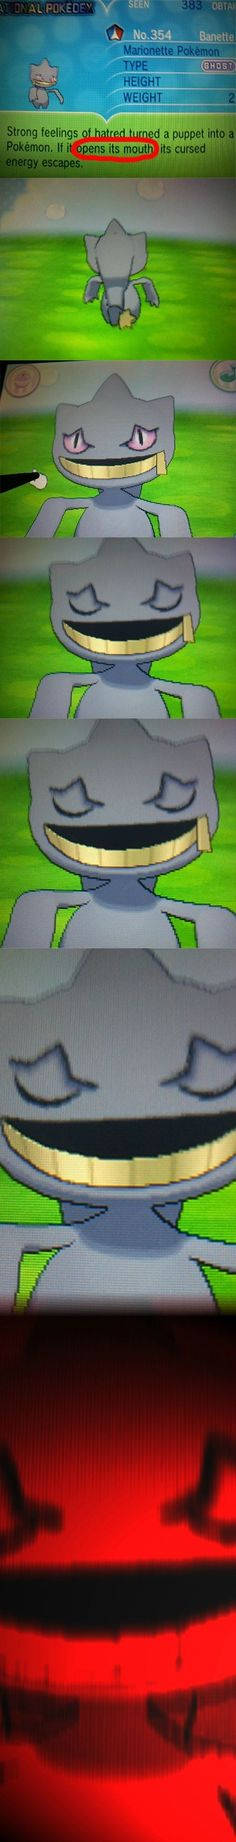 It's a MARIONETTE POKEMON OH LORD